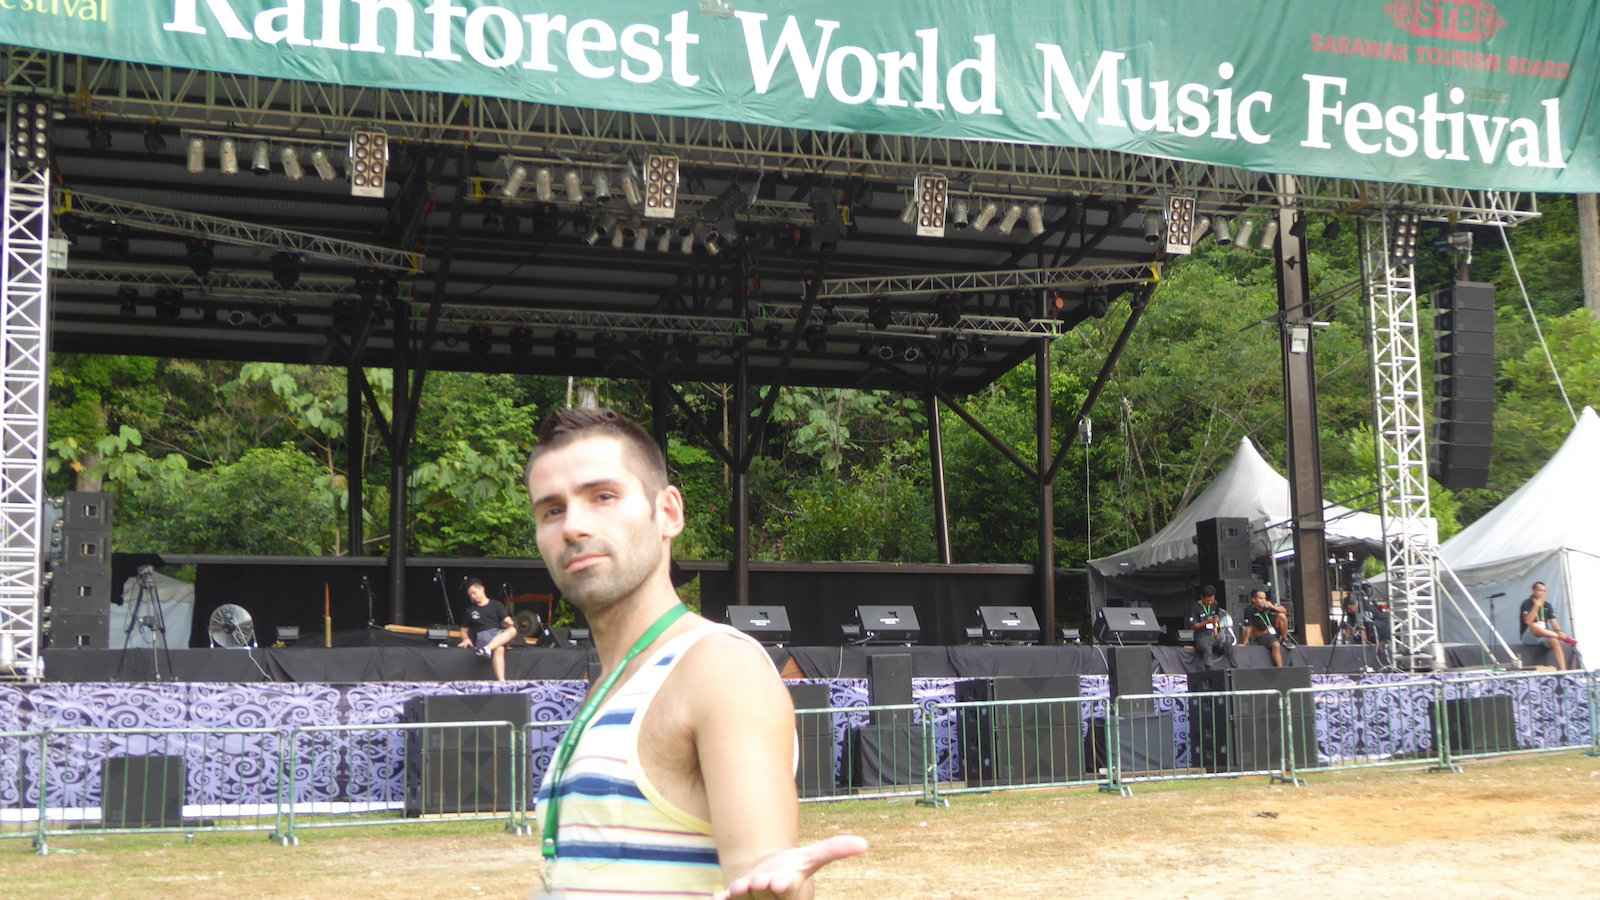 The Rainforest World Music Festival is a three day event showcasing musicians from around the world